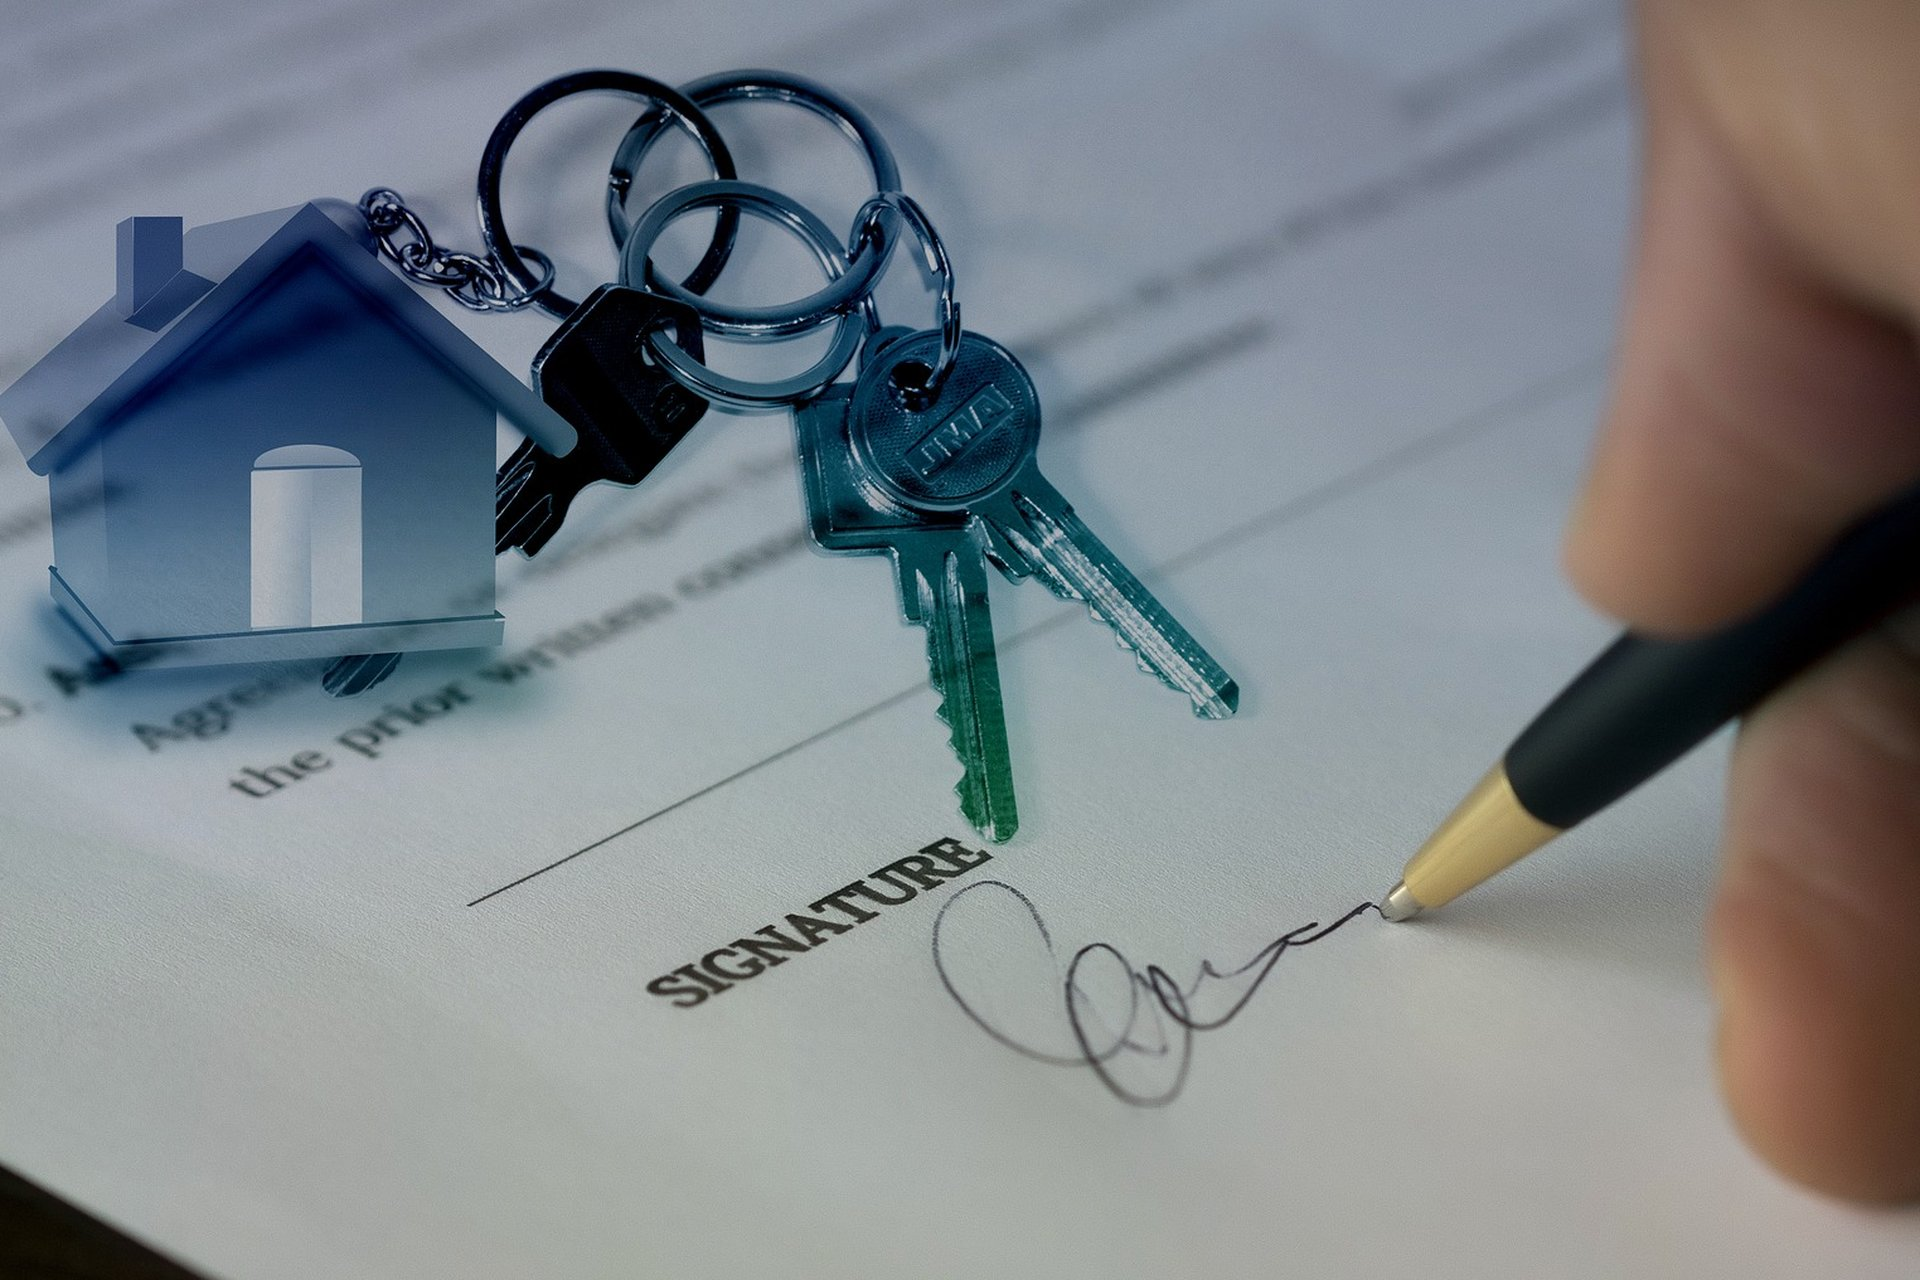 CAN FOREIGNERS BUY REAL ESTATE IN THE REPUBLIC OF CROATIA?